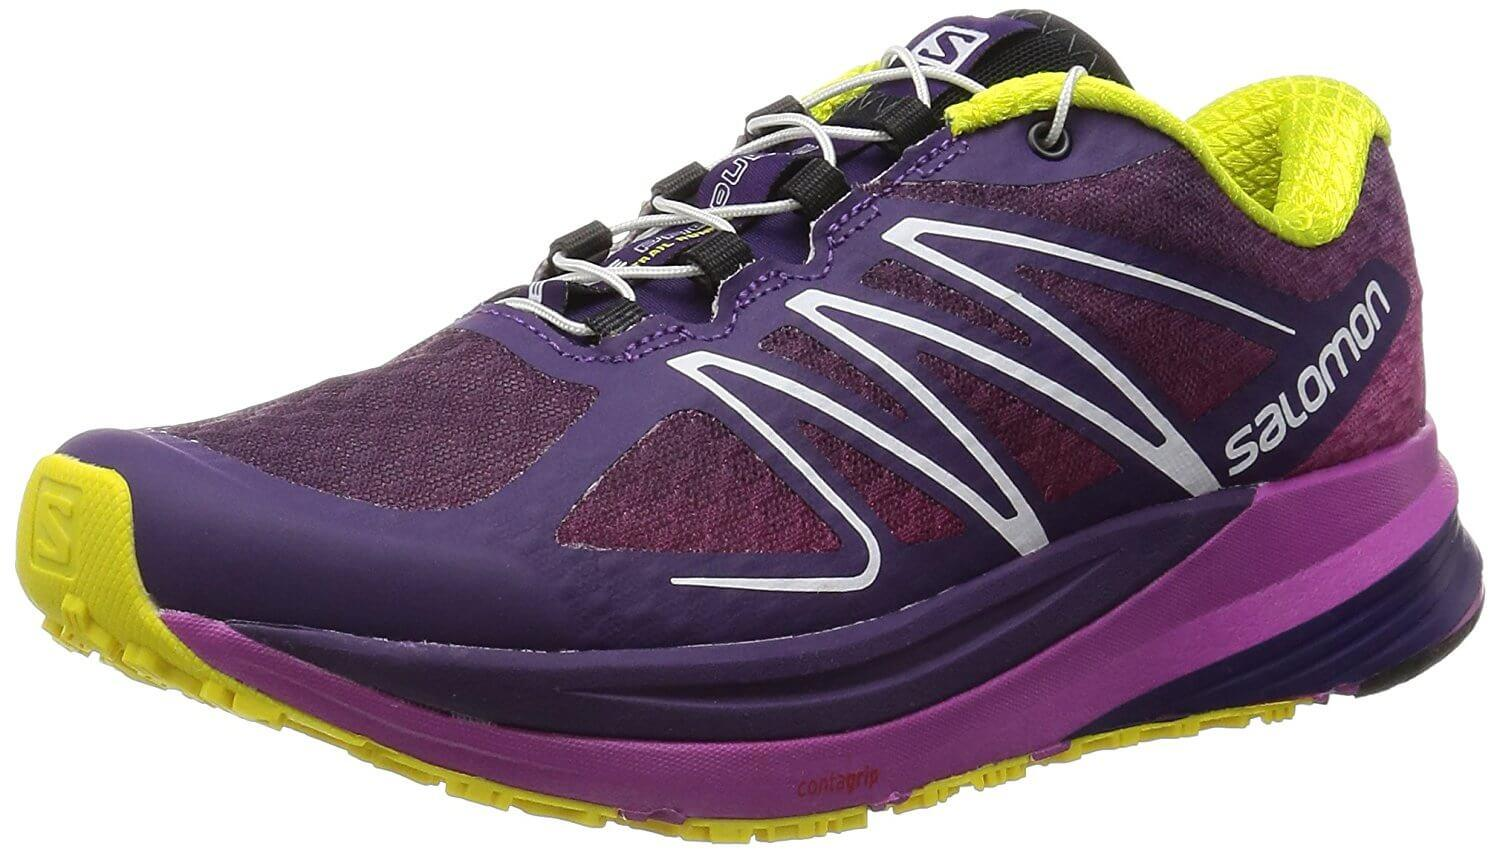 A three quarter view of the Salomon Sense ProPulse trail running shoe